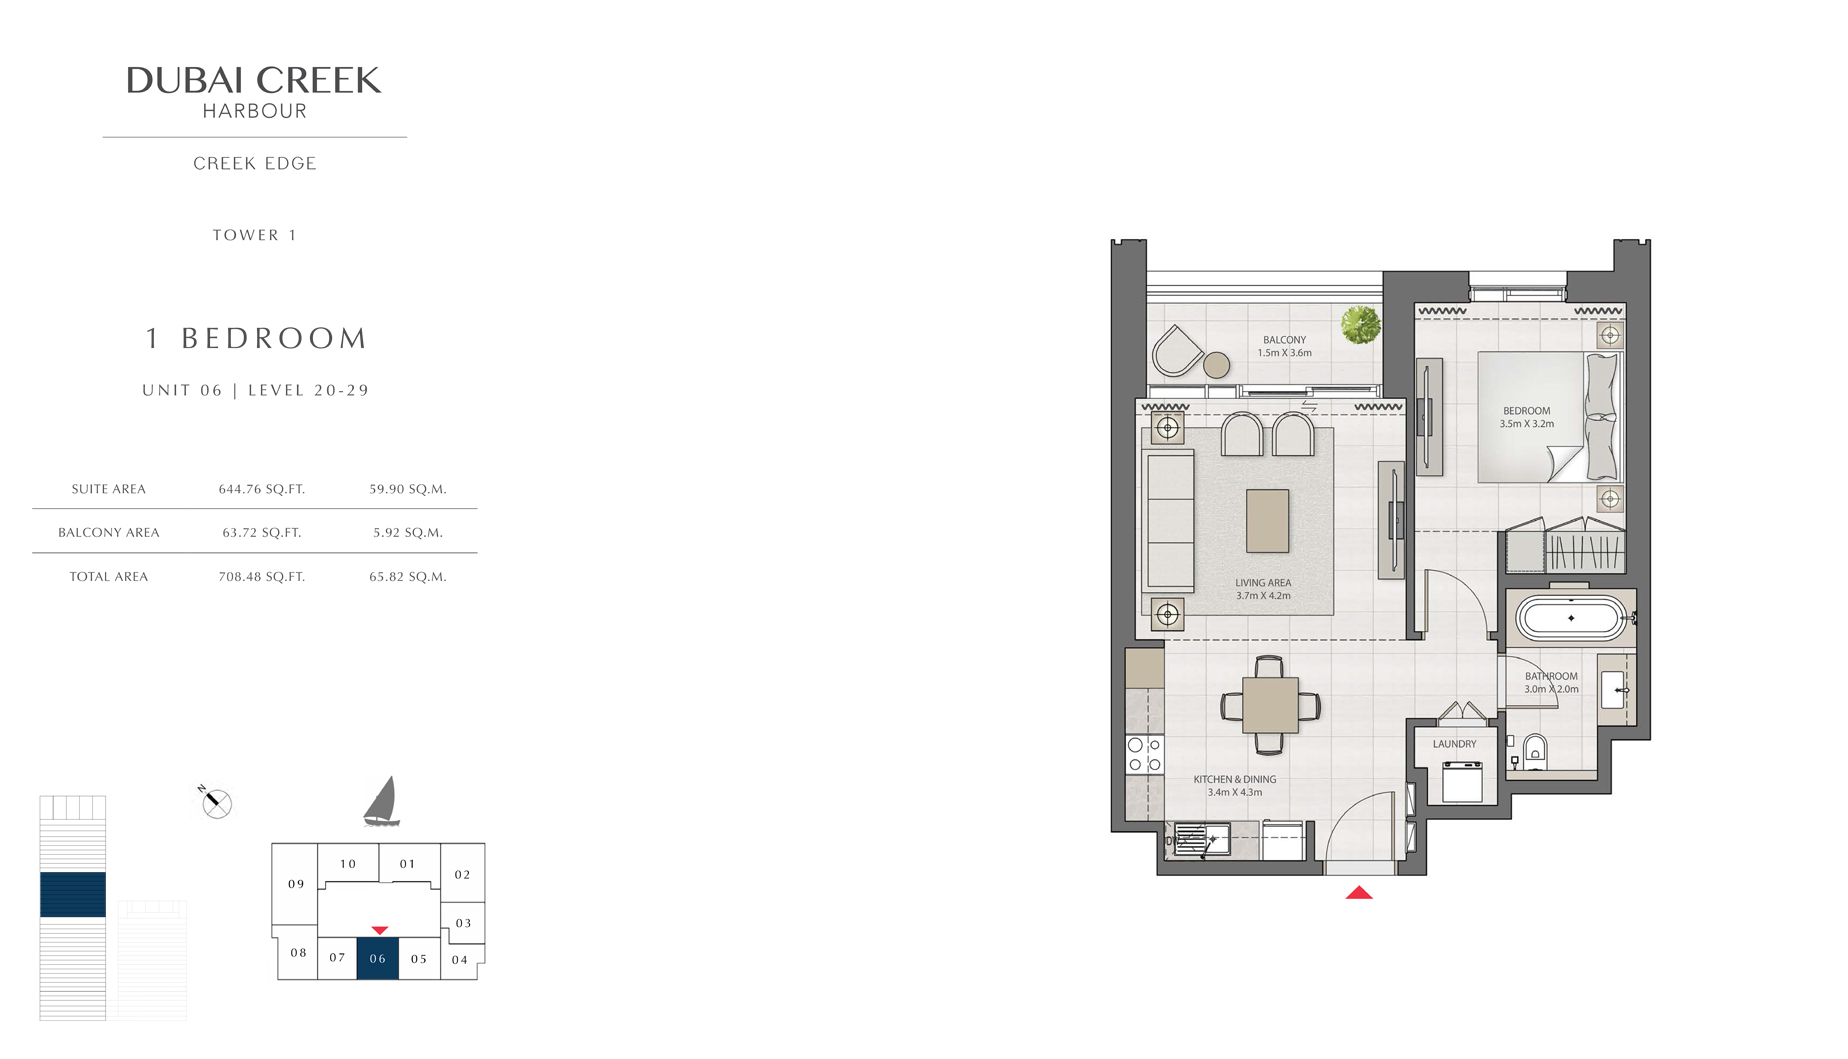 1 Bedroom Tower 1 Unit 06 Level 20-29  Size 708 sq.ft